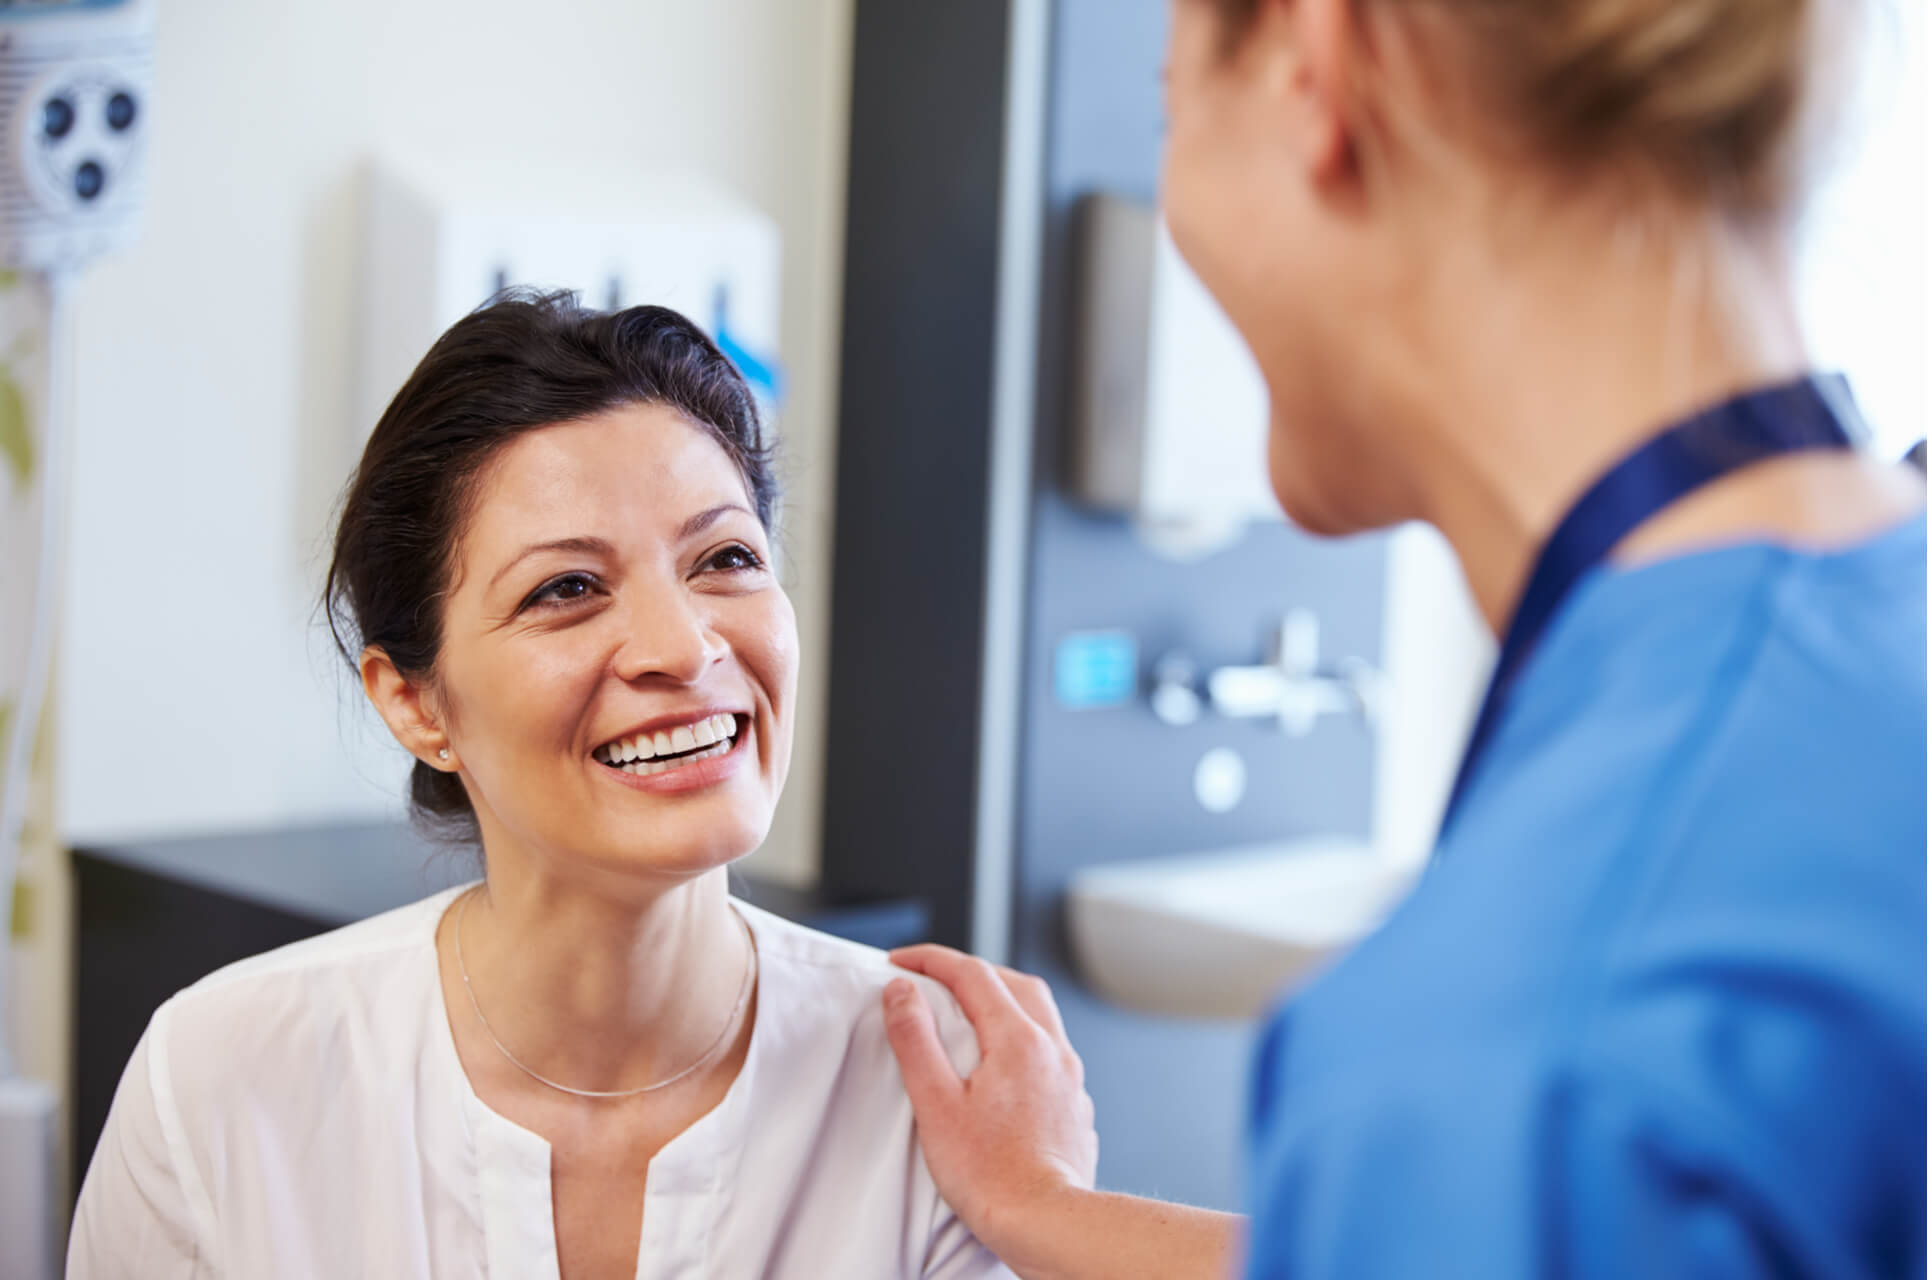 What to Expect Before and After Your Varicose Vein Procedure